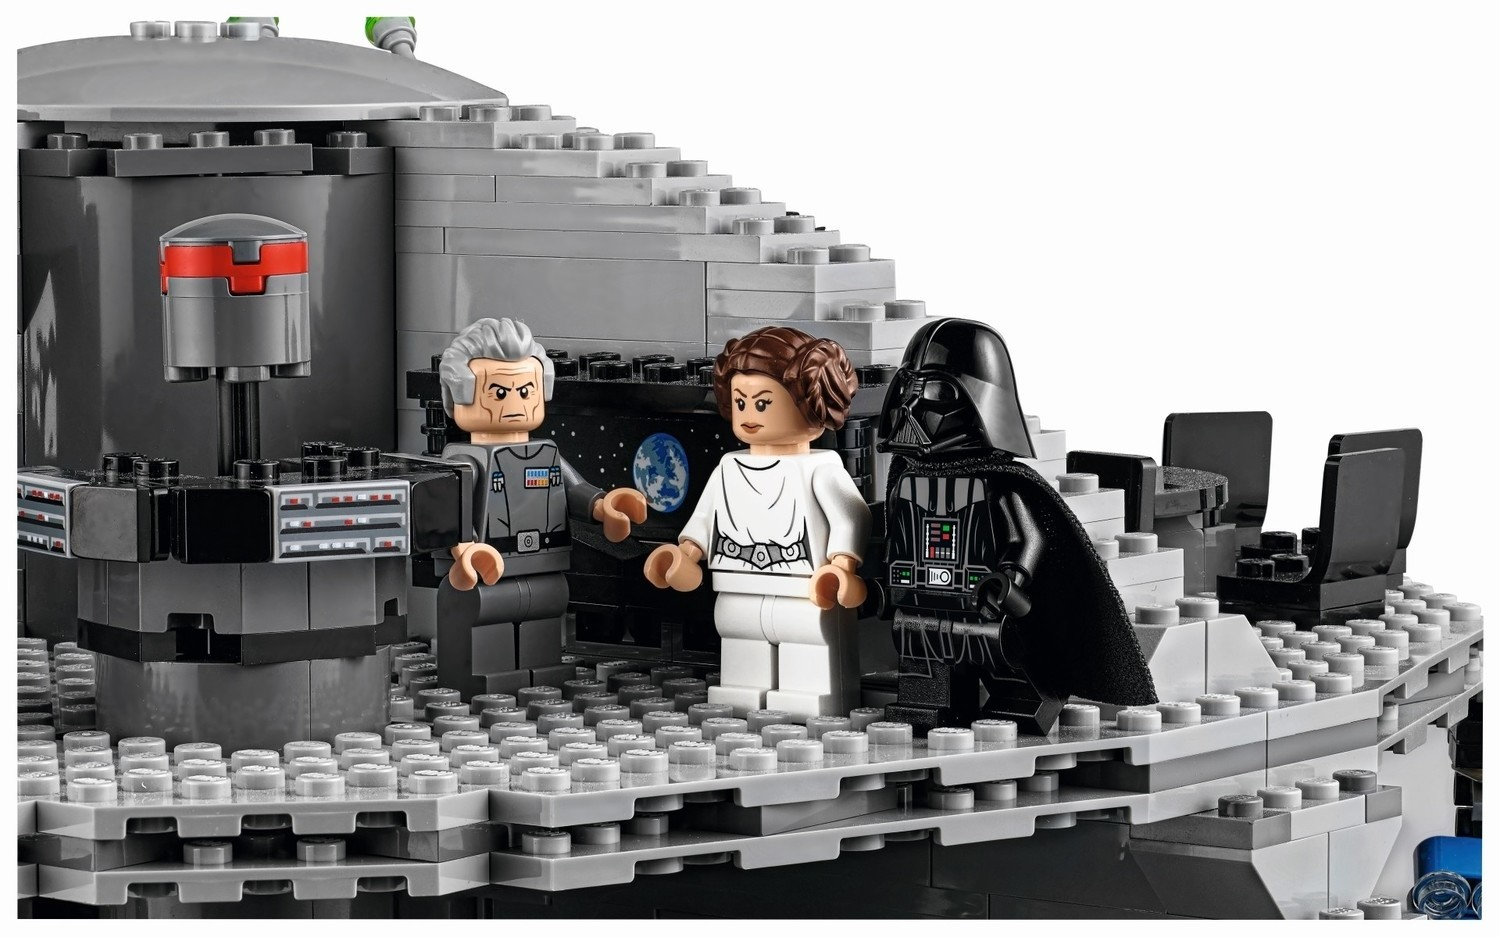 The Death Star Ultimate Collectors Series Lego Star